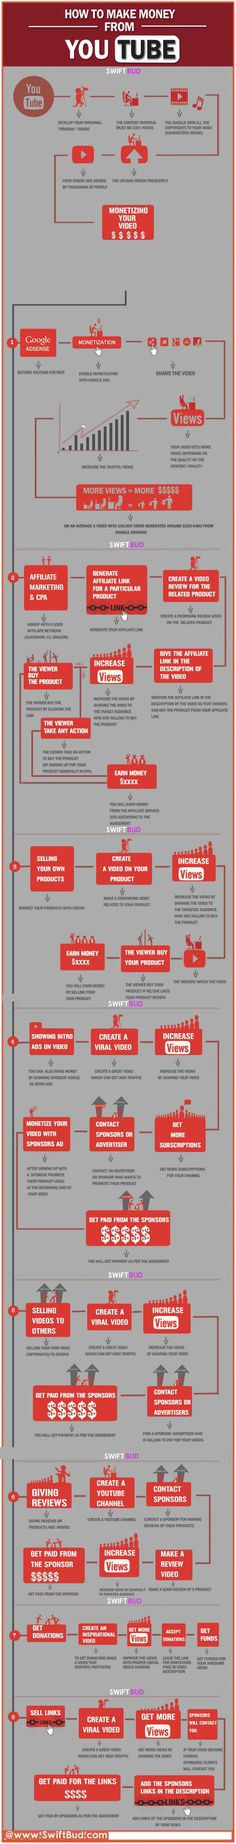 How to make money from @Youtube #Socialnetwork #youtube #infographic